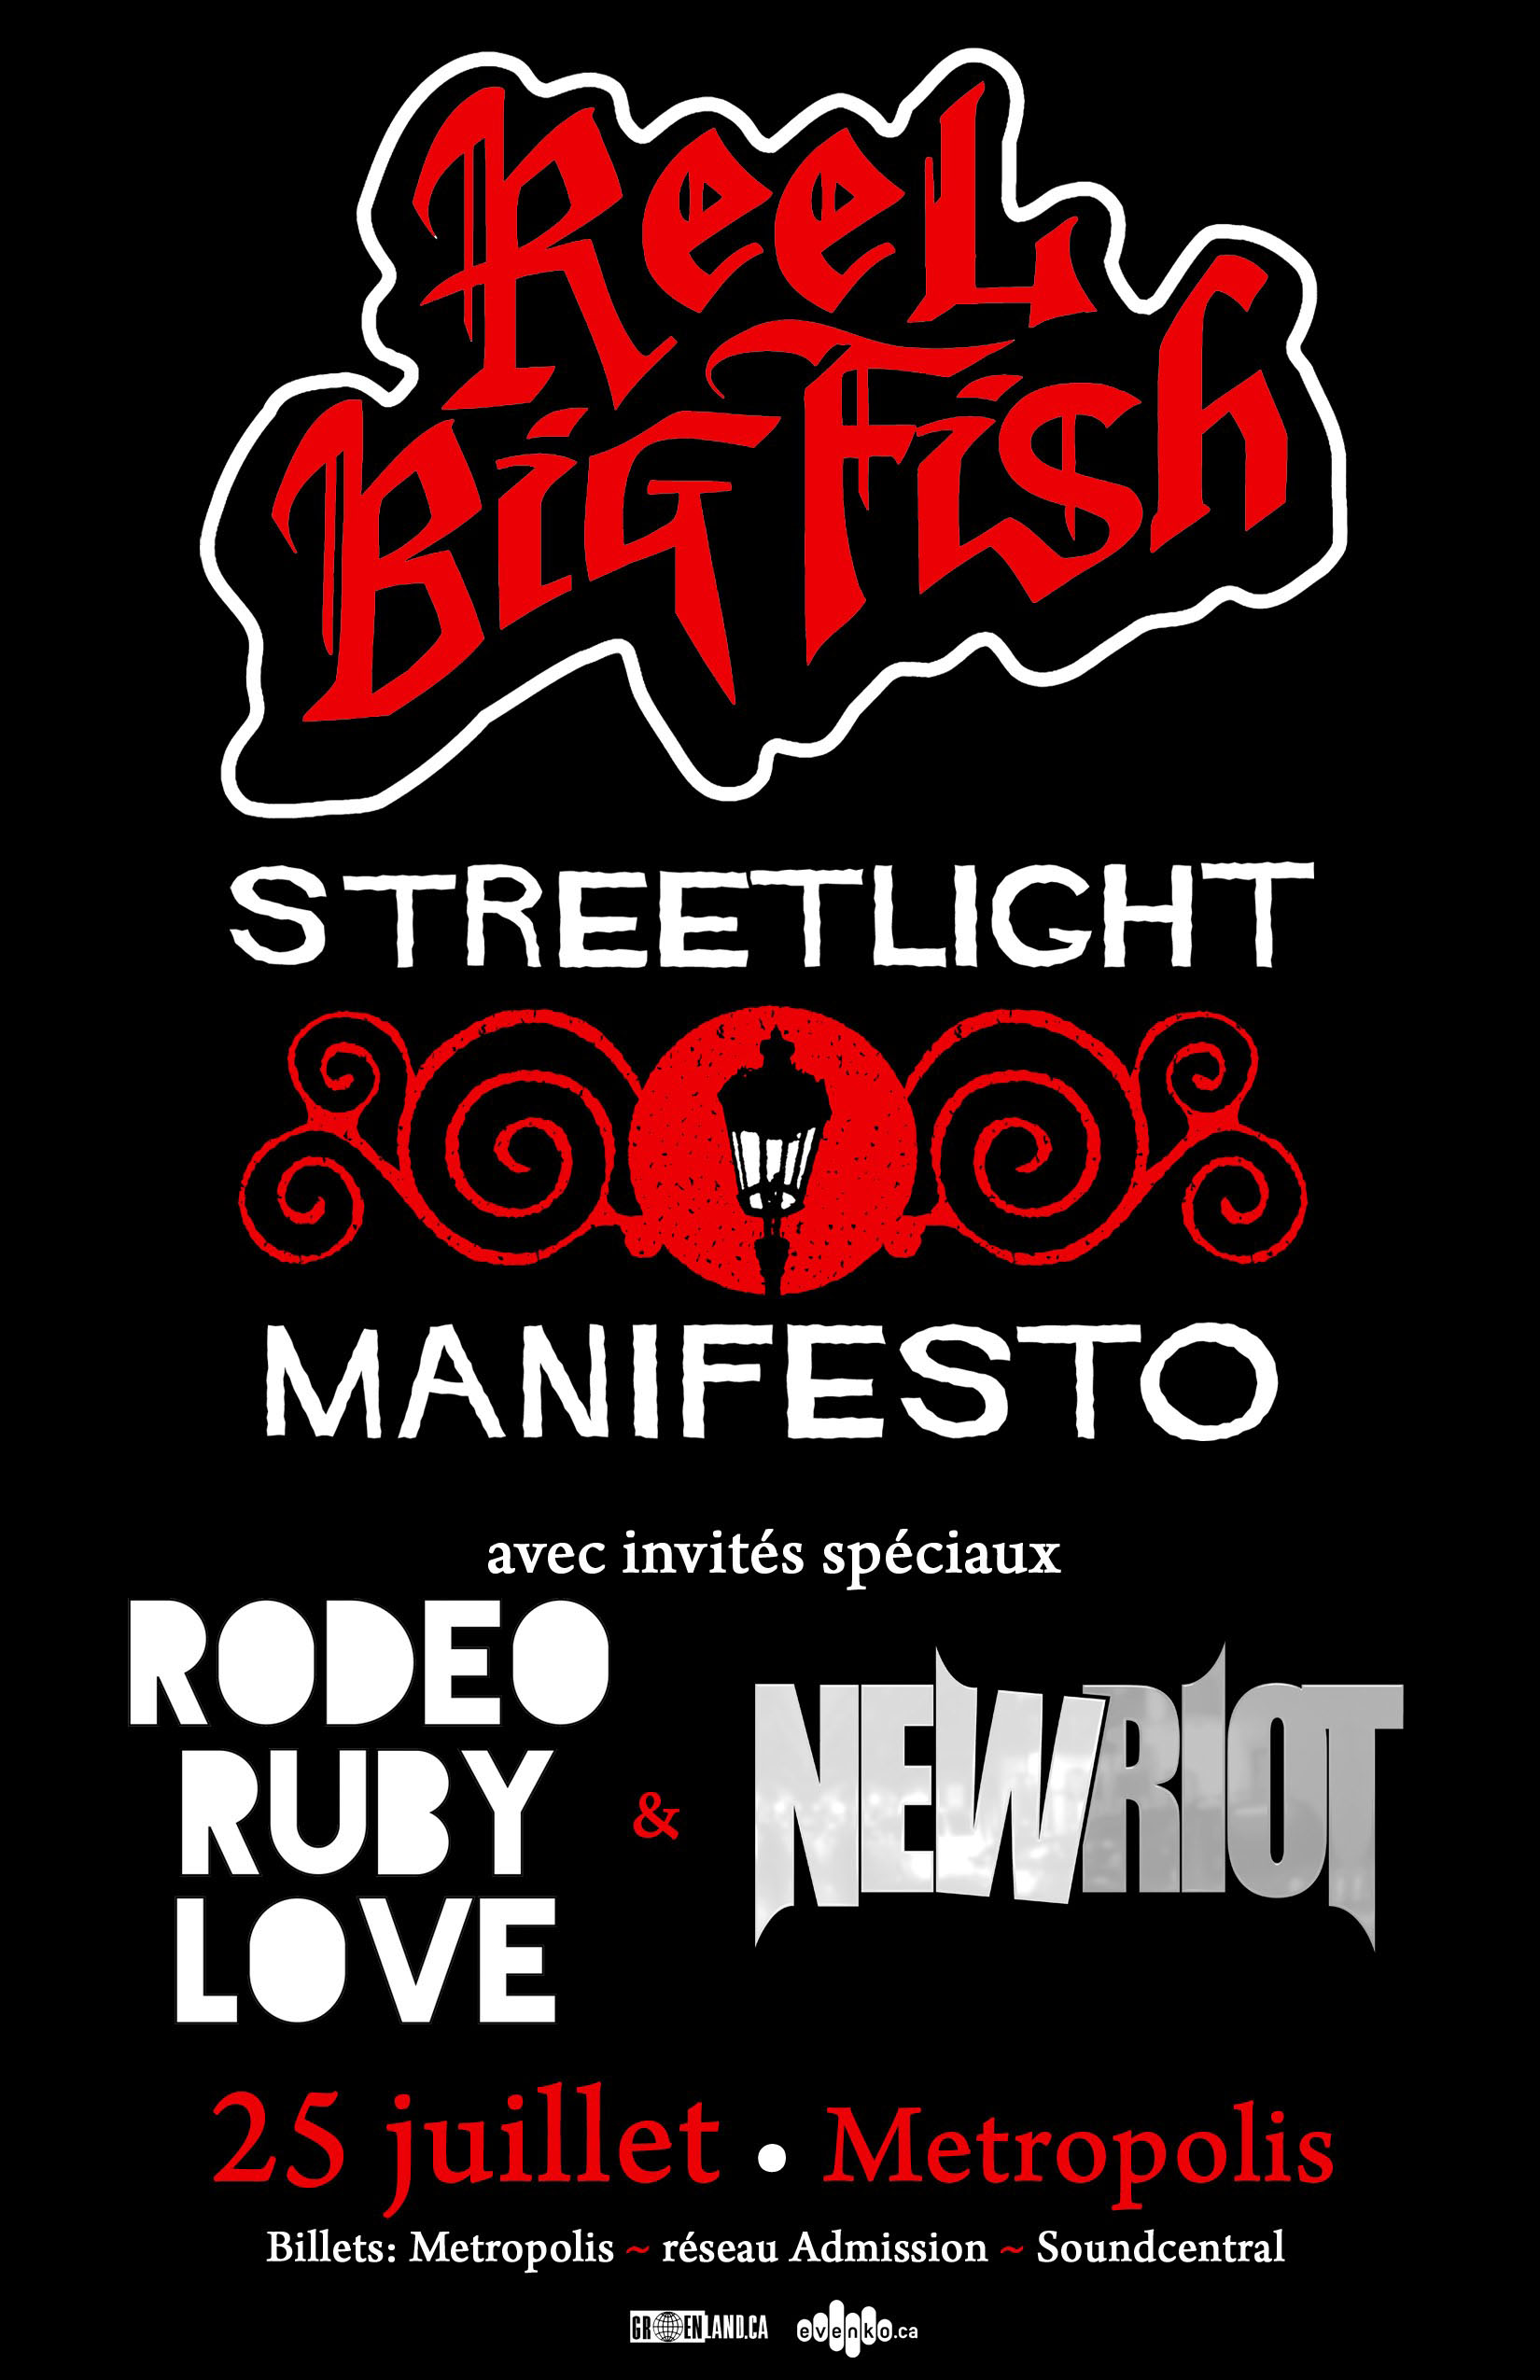 ReelBigFish_Streetligh(Jul11)_poster